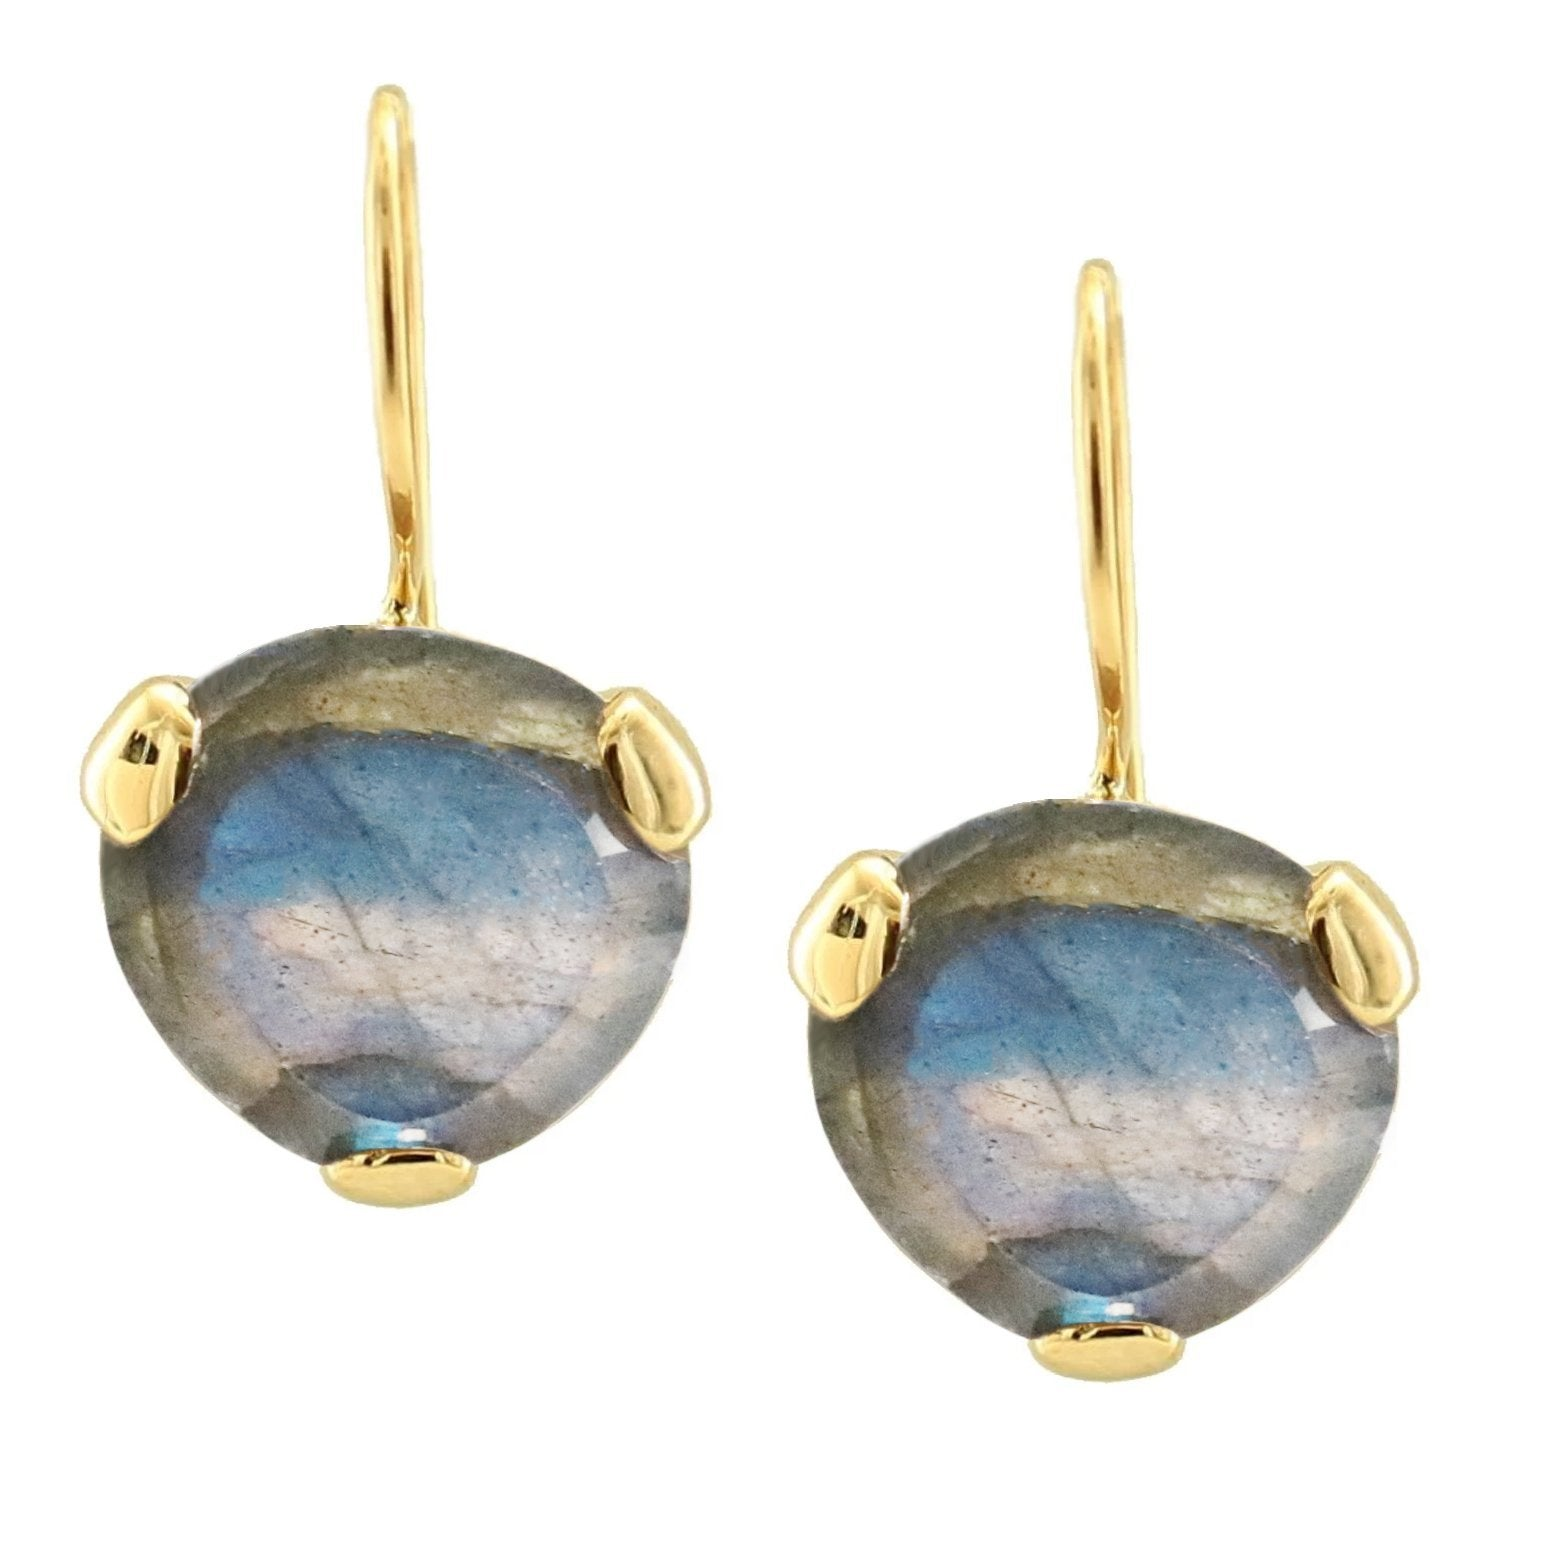 FEARLESS DROP EARRINGS - LABRADORITE & GOLD - SO PRETTY CARA COTTER